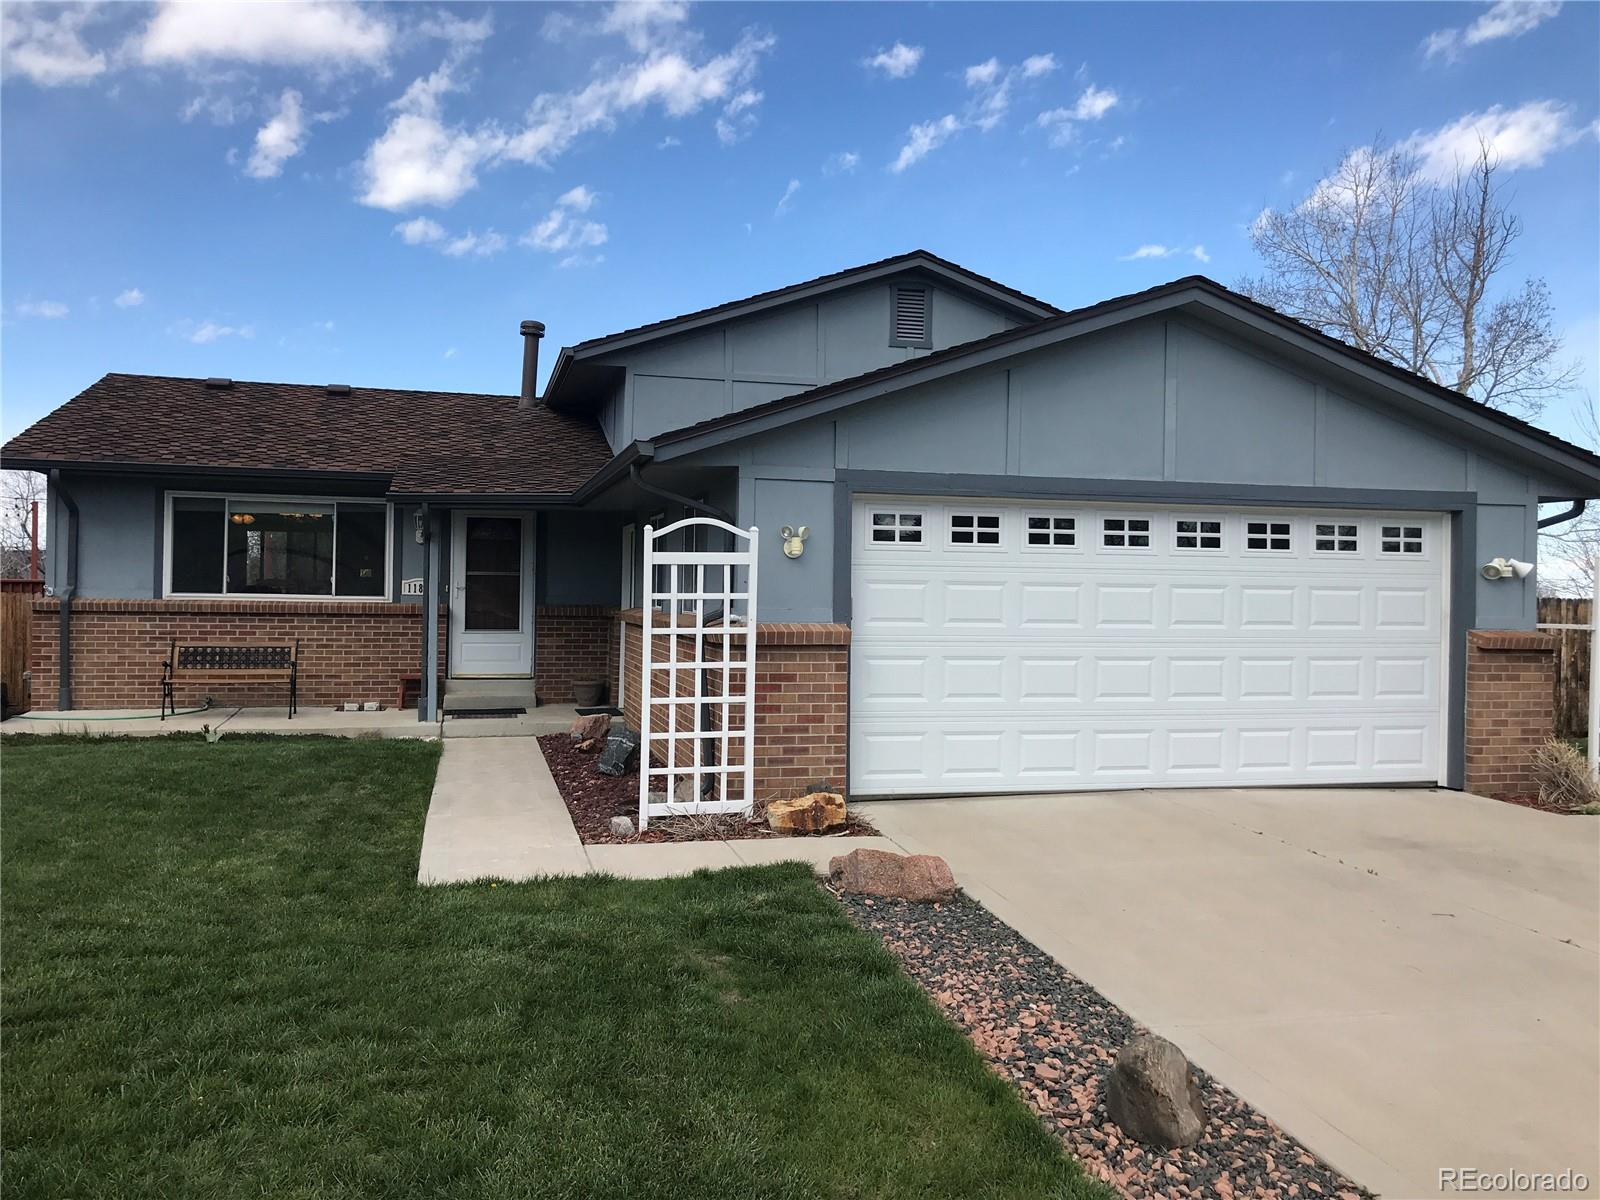 11881 W 106th Place, Westminster, CO 80021 - Westminster, CO real estate listing